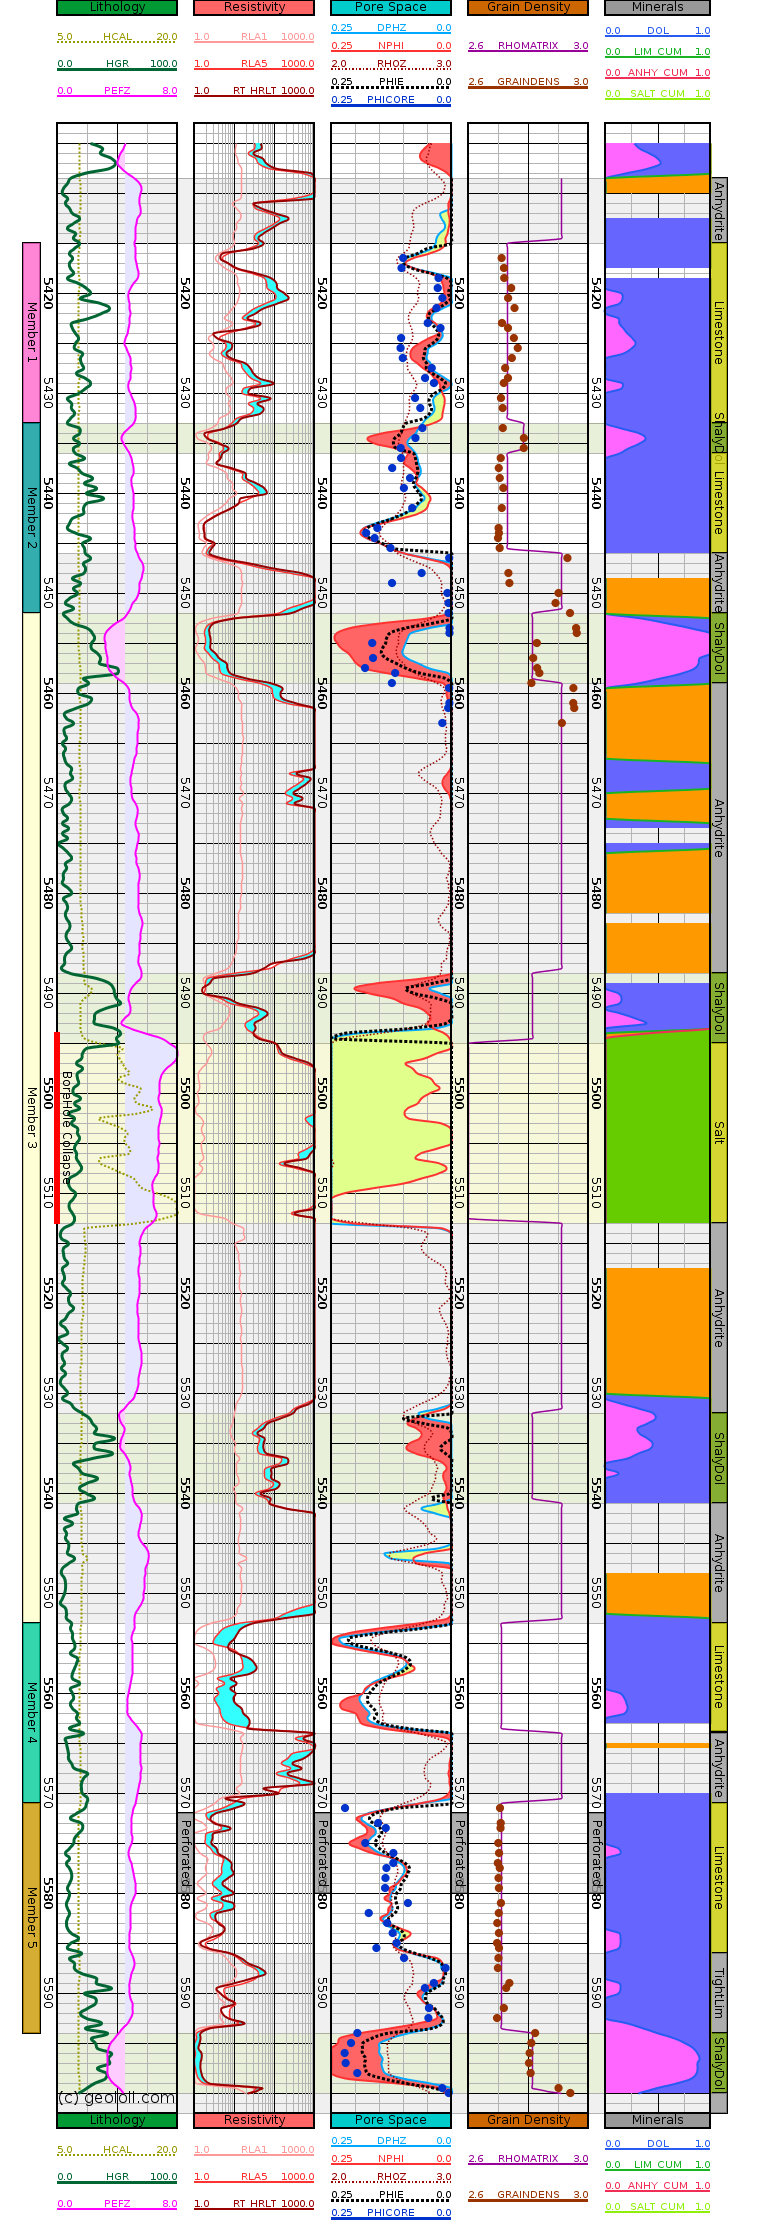 GeolOil well log plot showing a mineral solver result for limestone, dolomite, anhydrite, and salt